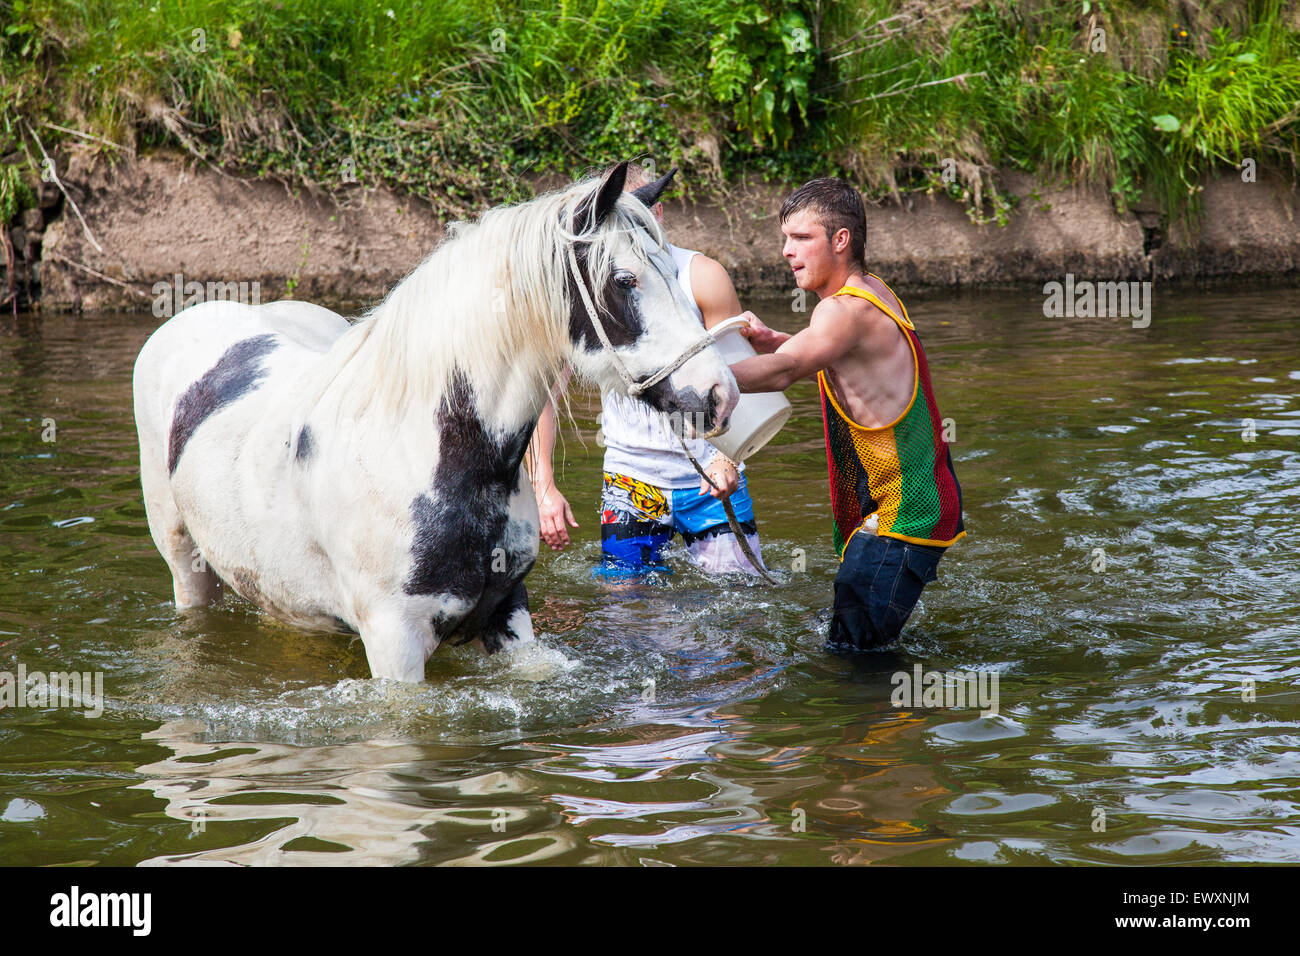 Washing horses in the river during Appleby Horse Fair - Stock Image